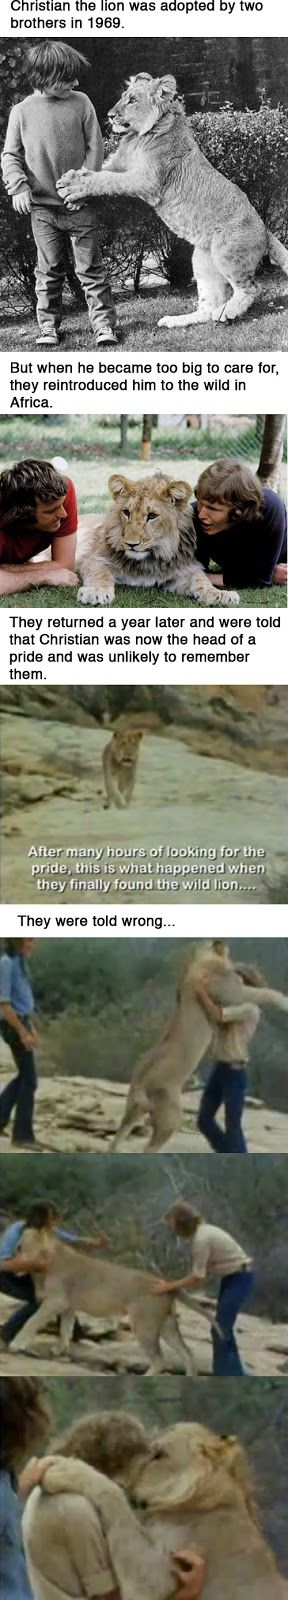 The amazing story of Christian the lion.